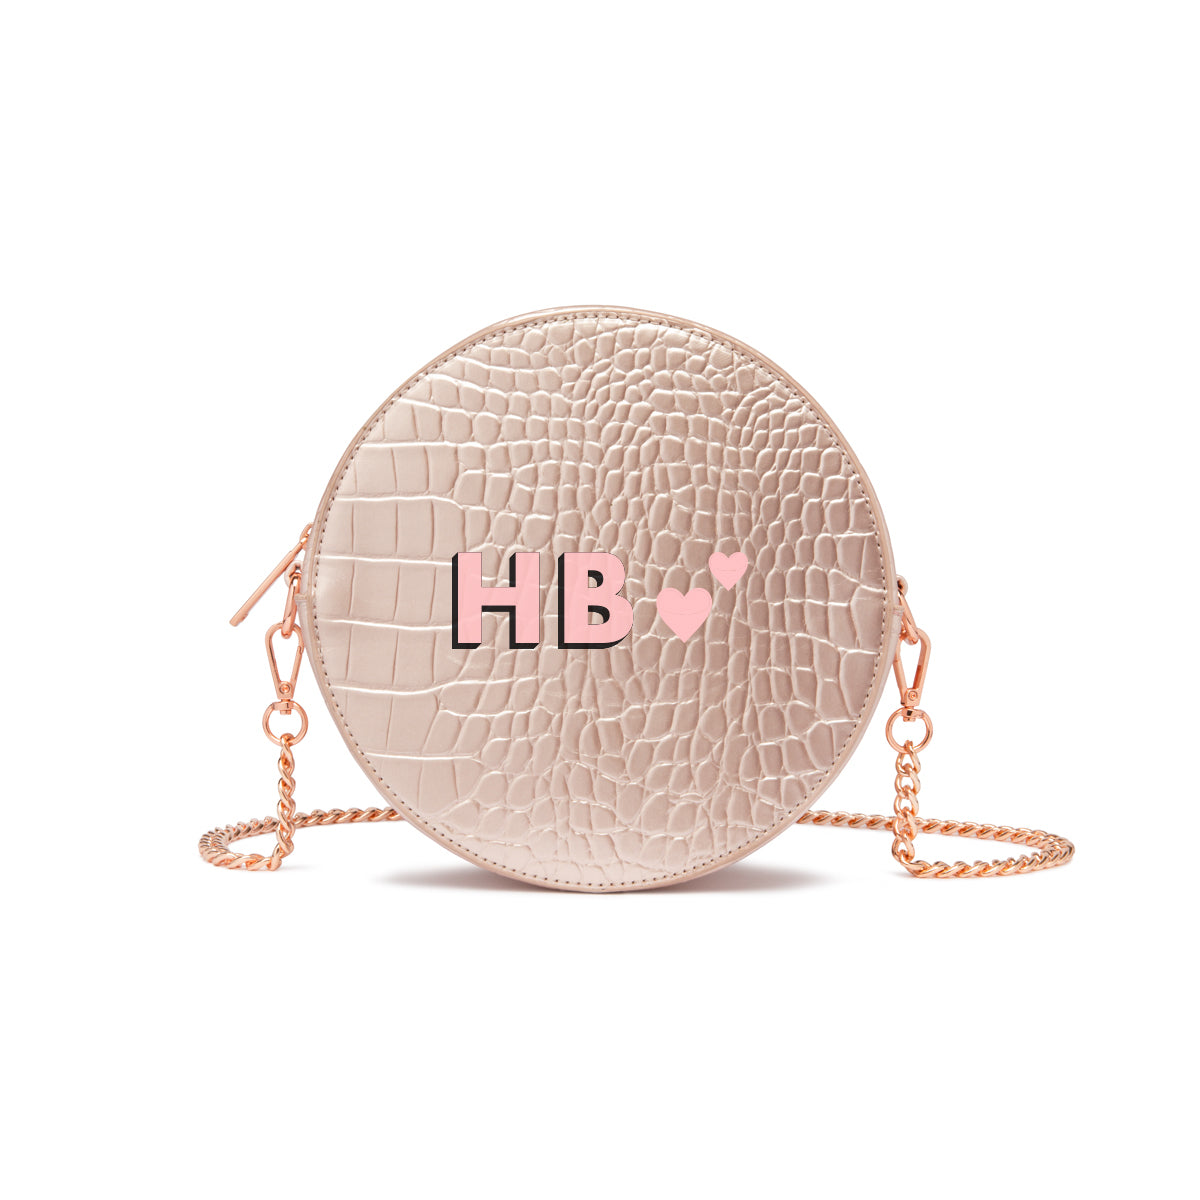 Sac Bandoulière Nina (Rose Poudré Brillant/Rose Gold)